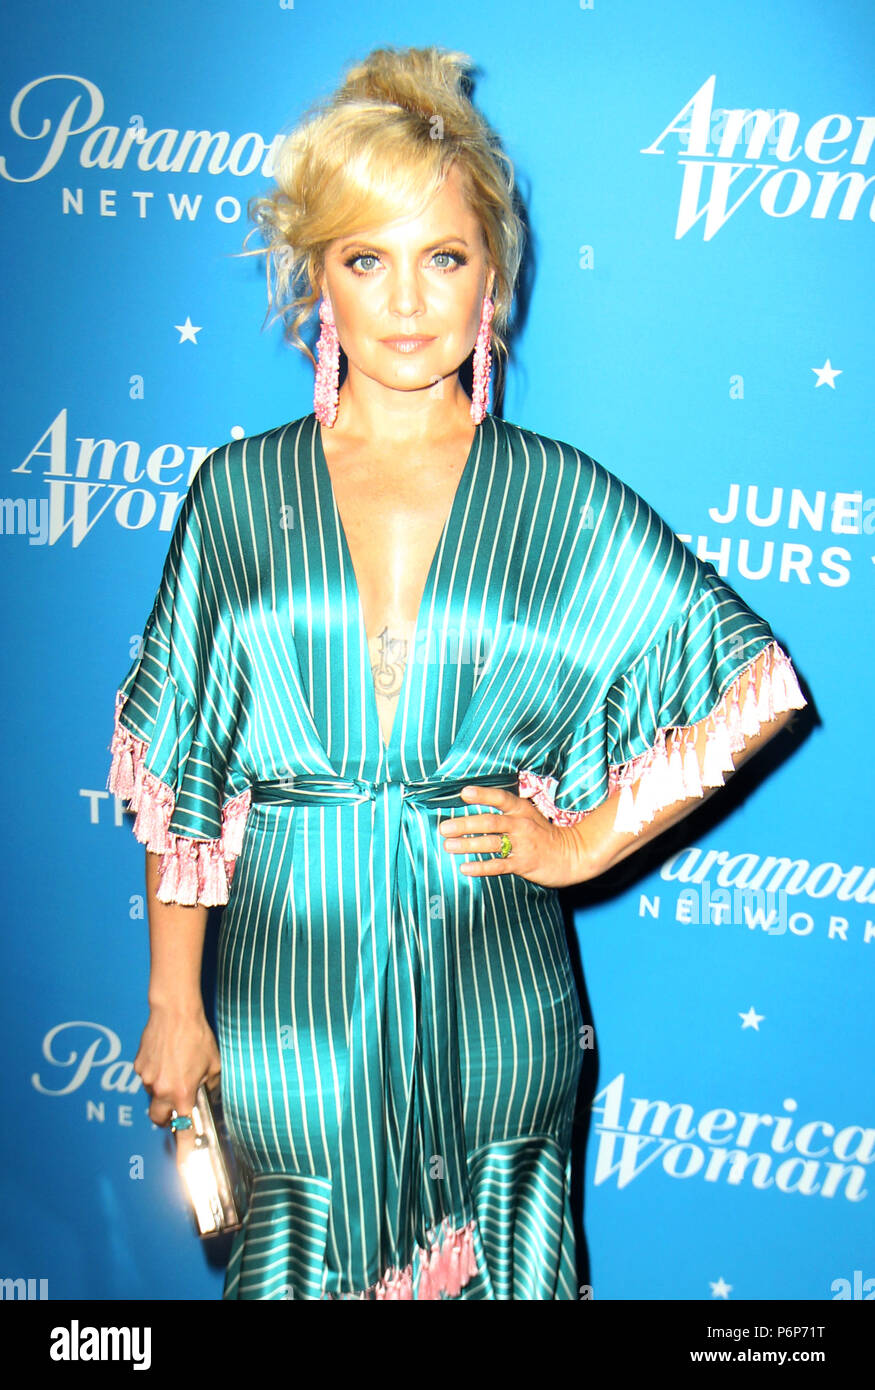 American Woman Premiere Party Held The Chateau Marmont In Los Angeles California